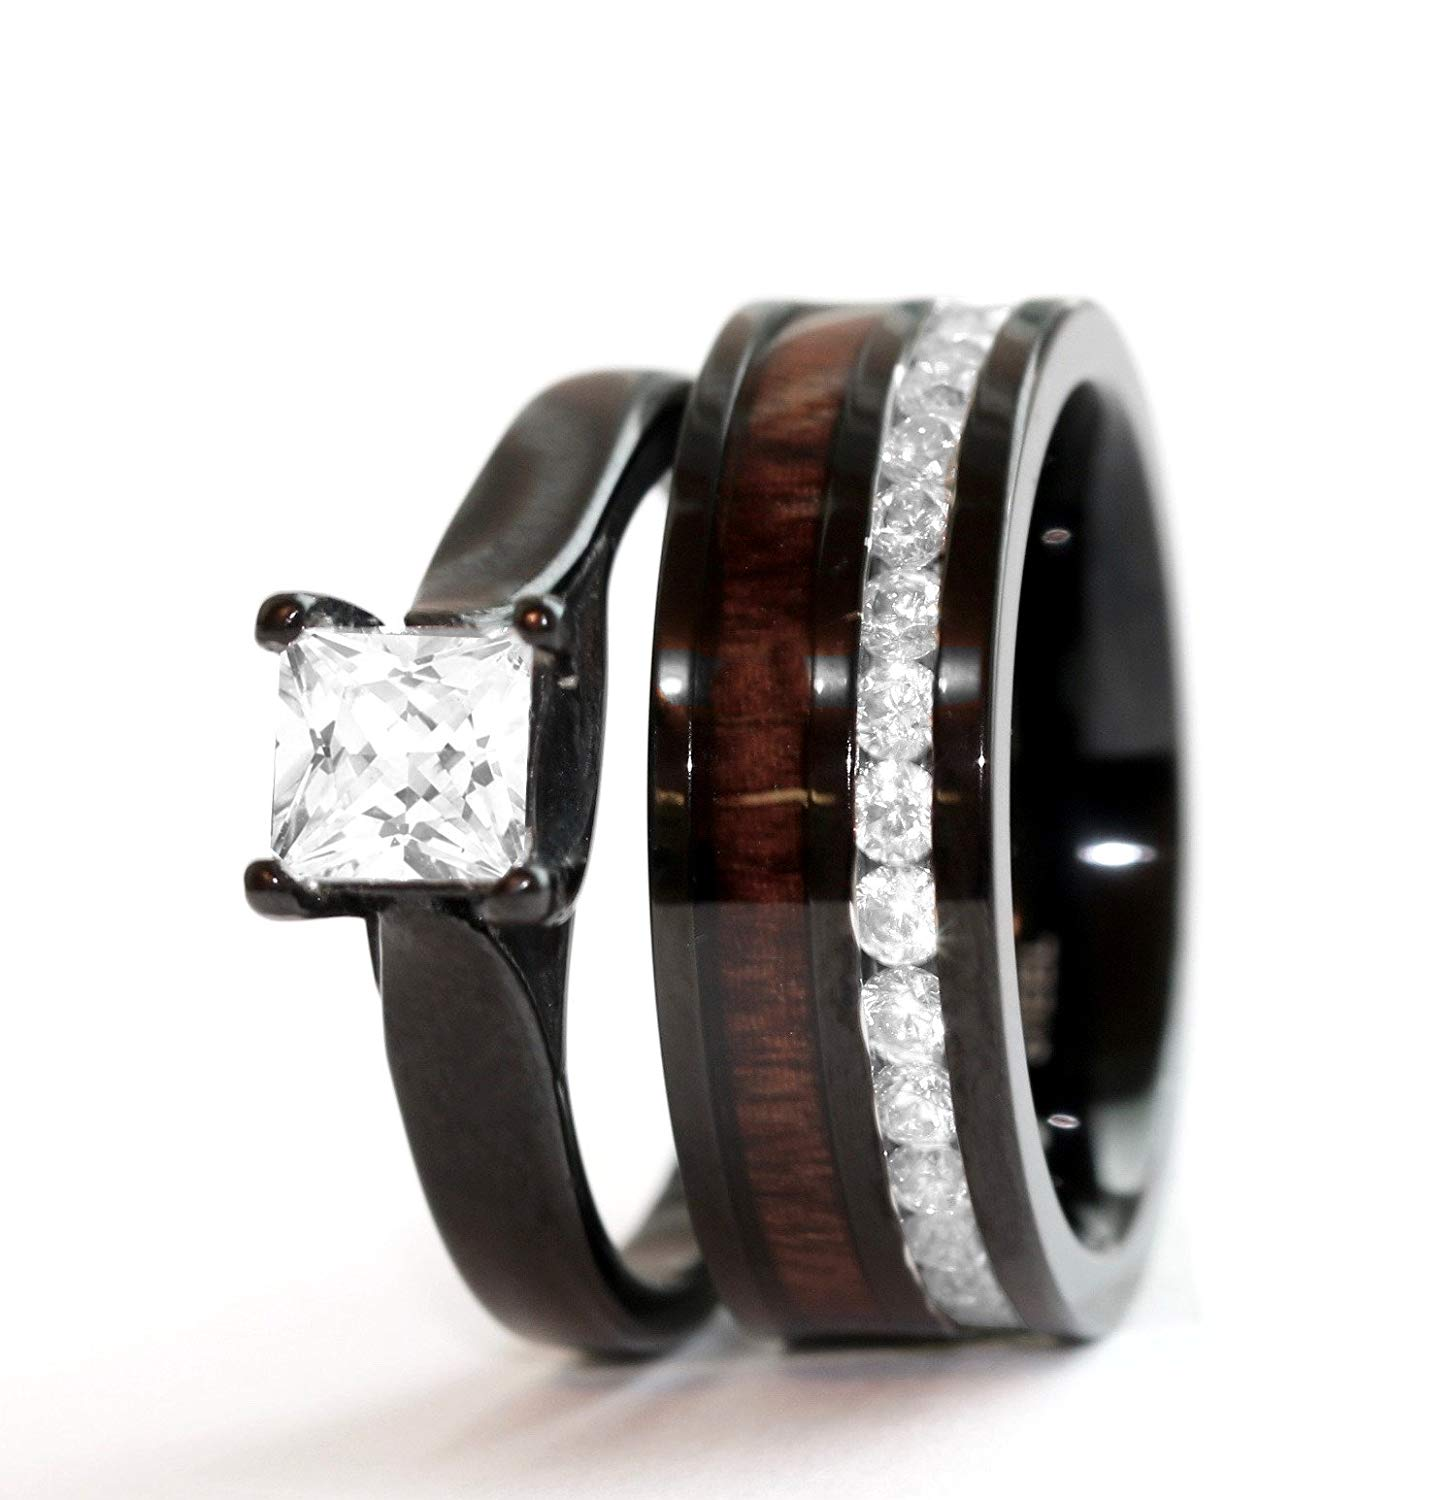 Get Quotations 2 Pc Natural Koa Wood Black Stainless Steel Engagement Wedding Rings Set Cubic Zirconium Durable Band